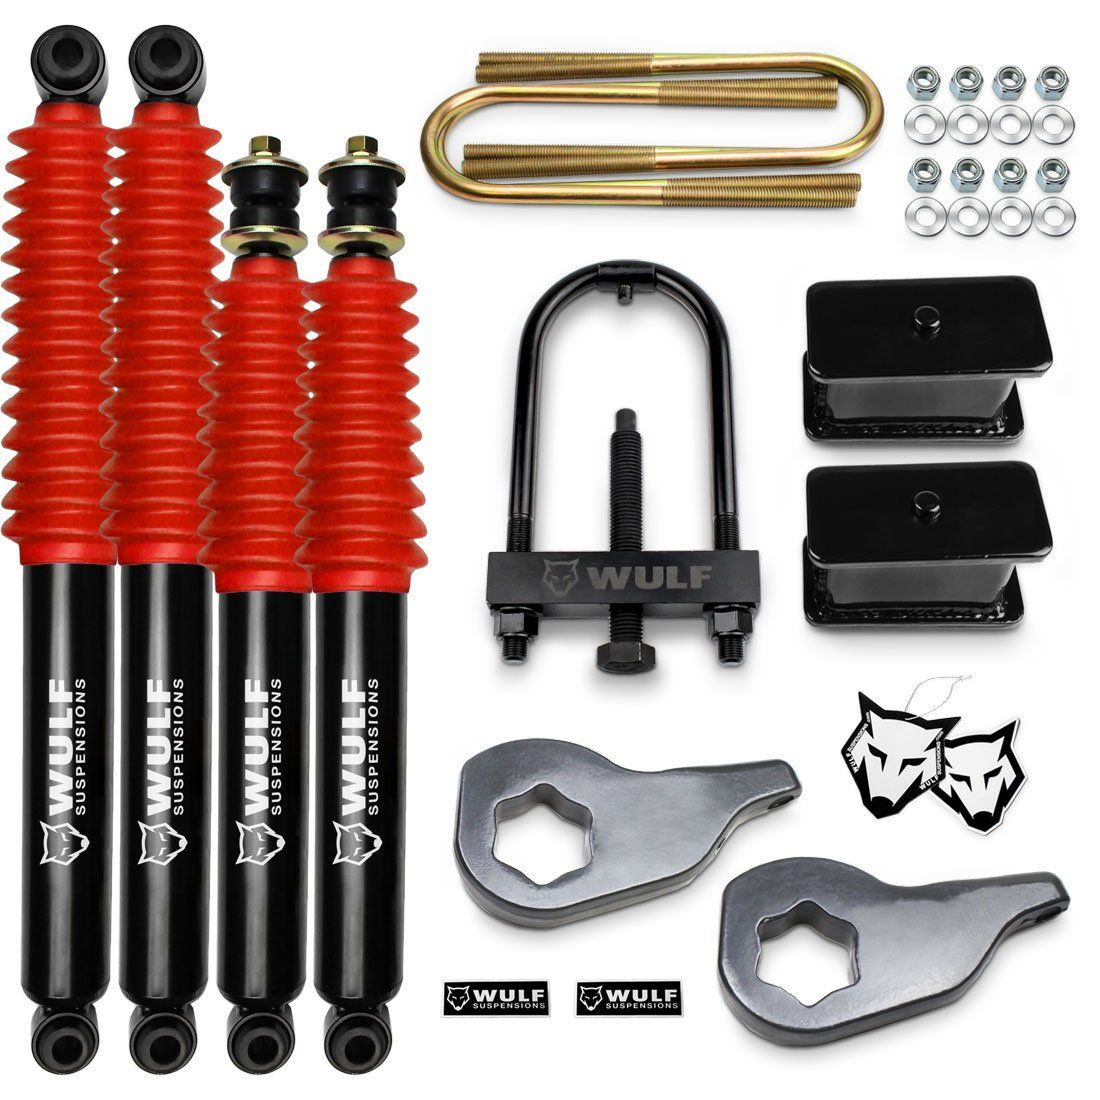 Fits Full Leveling Lift Kit With Wulf Extended Shocks 2002 2005 Dodge Ram 1500 4x4 4wd Torsion Key Unloading Tool Does Not Dodge Ram 1500 Ram 1500 Dodge Ram